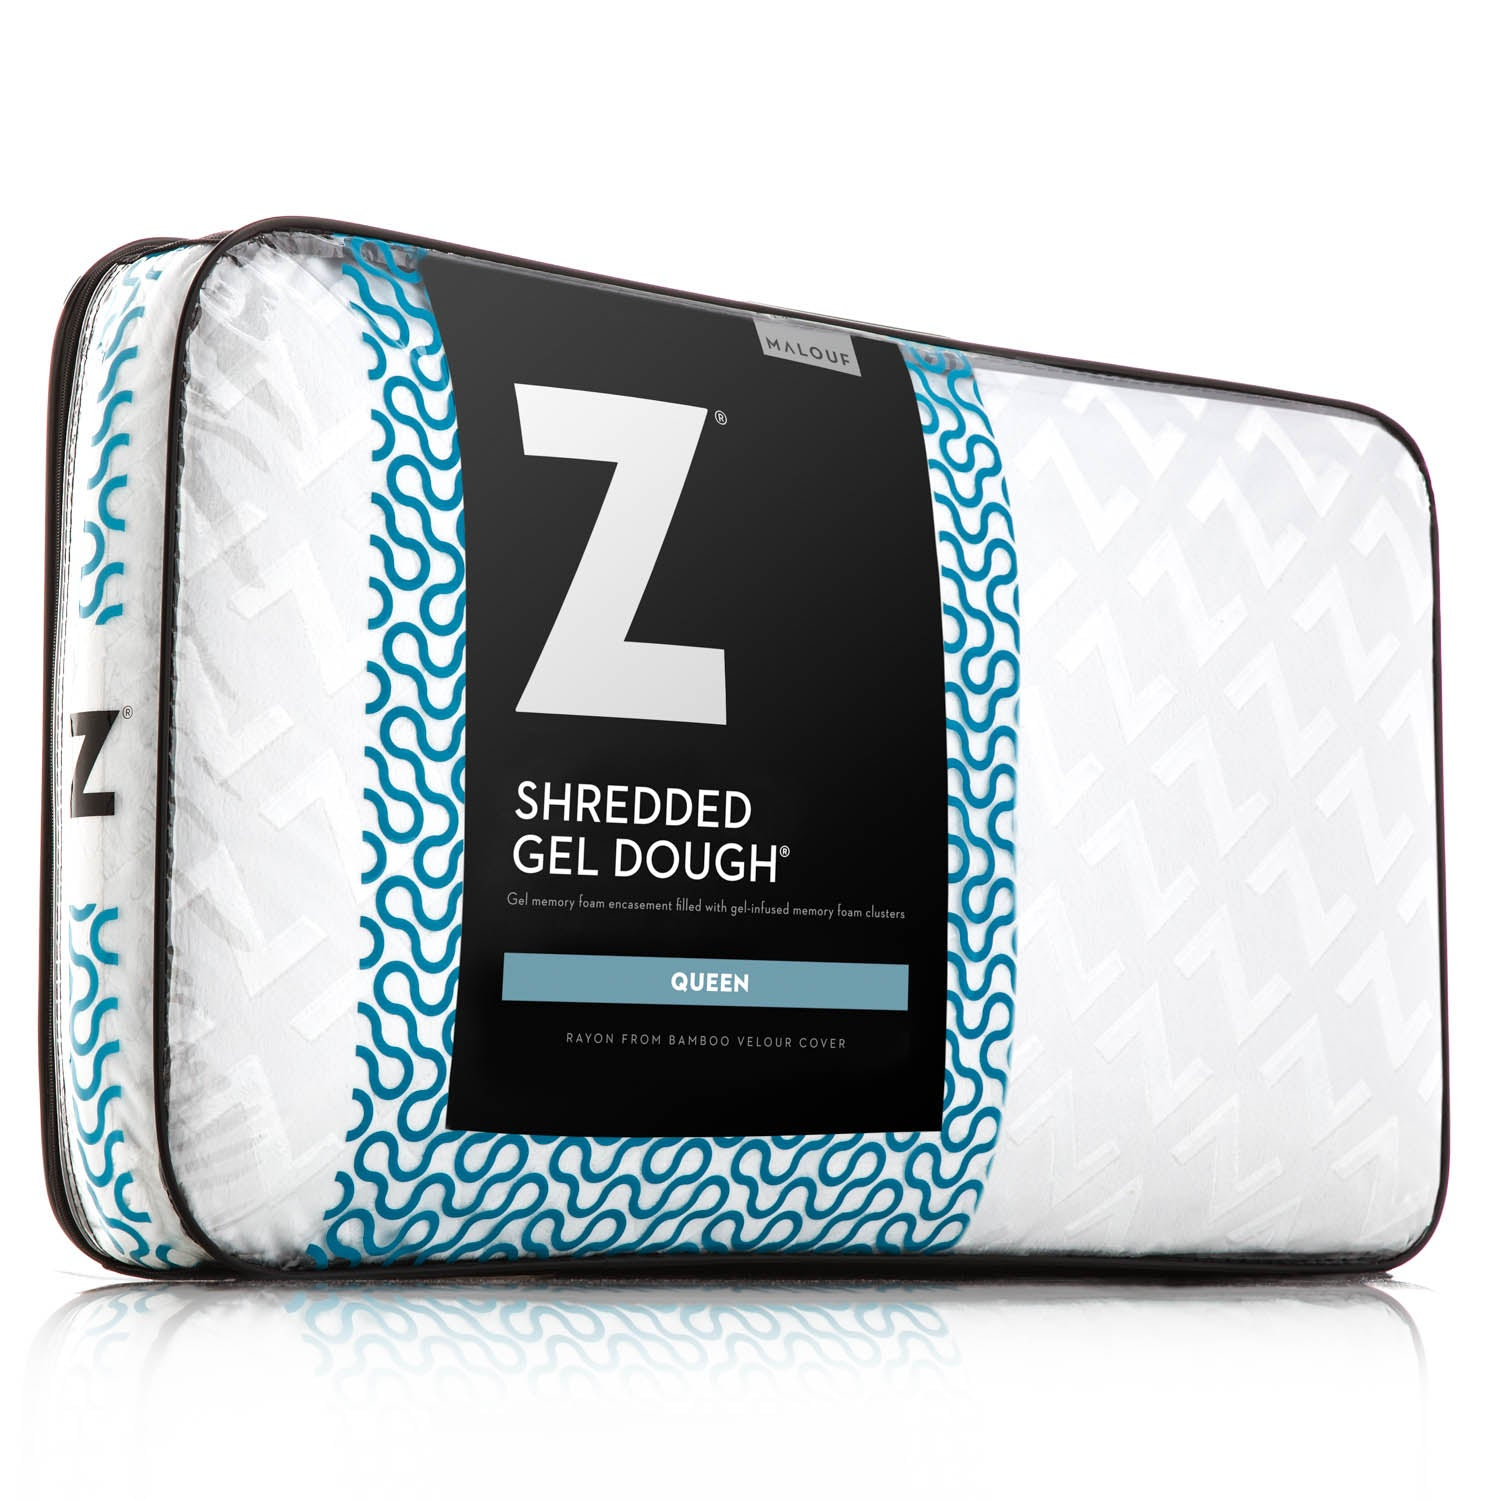 Shredded Gel Dough Pillow - Ultimate Comfort Sleep